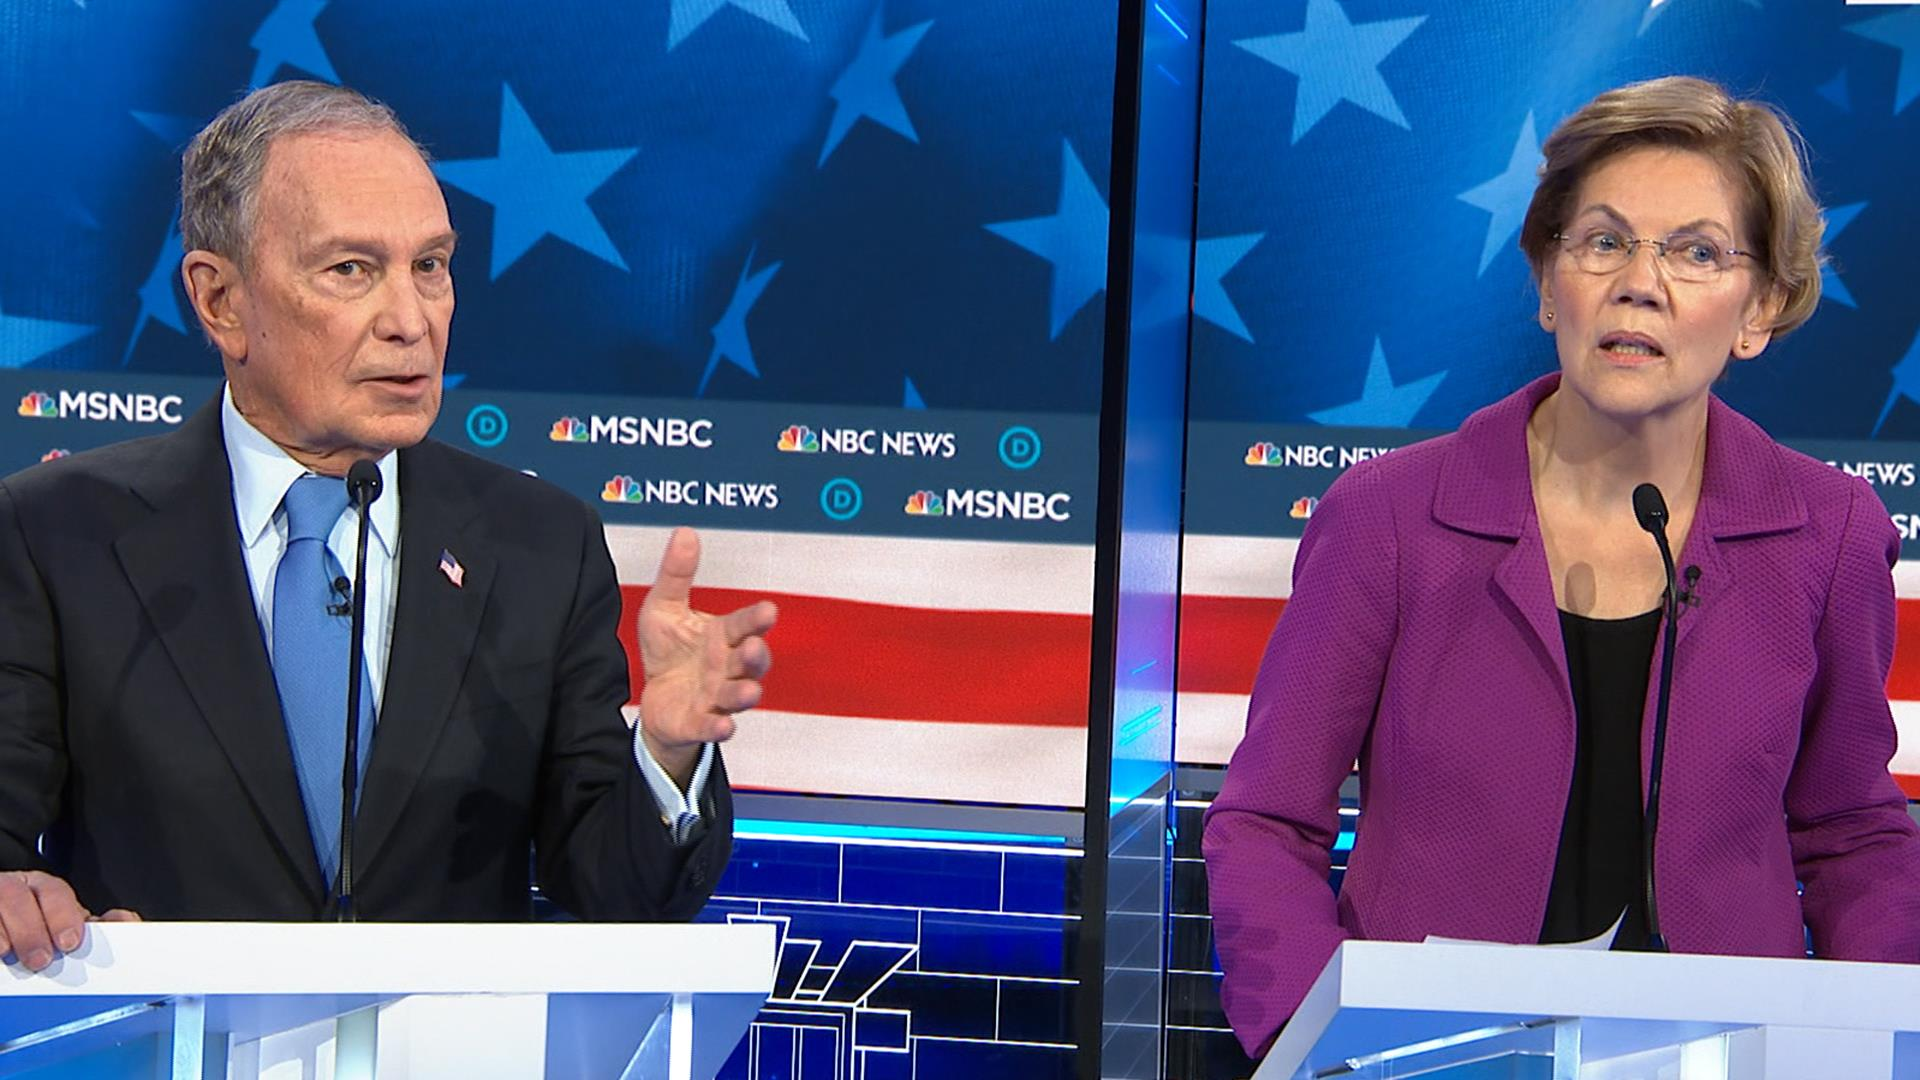 Warren to Bloomberg: Here's how you let women out of NDAs